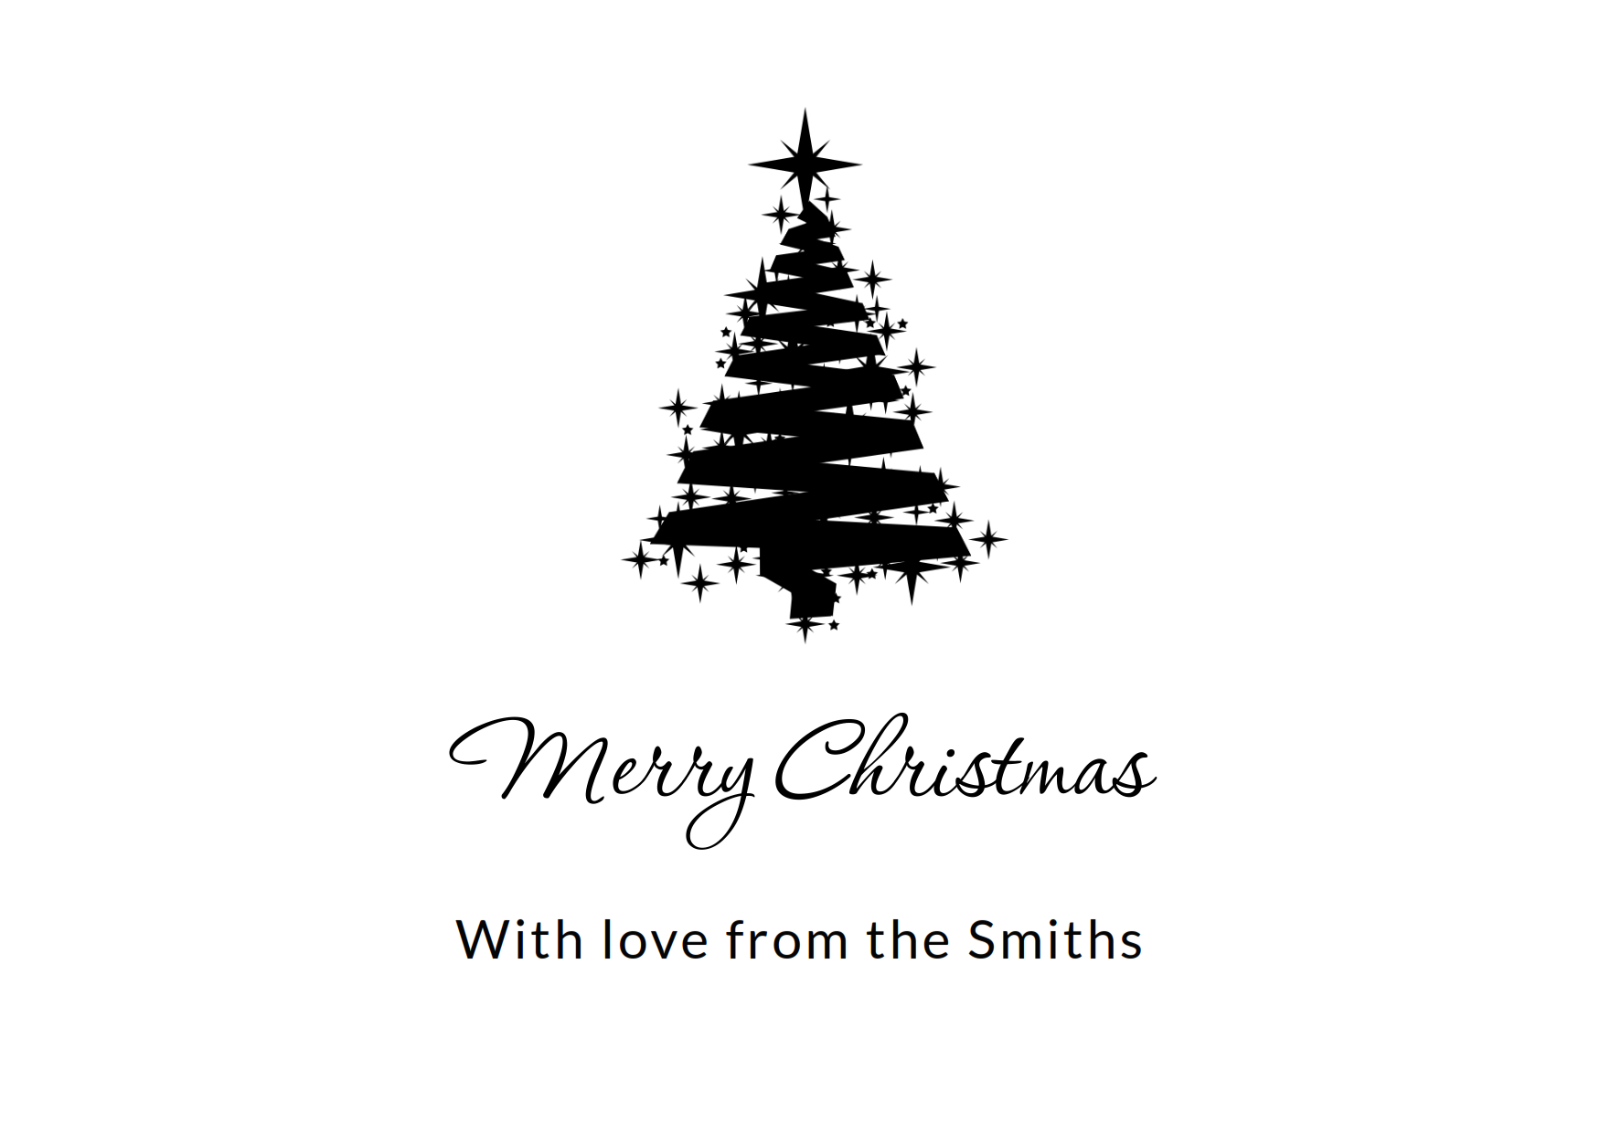 Personalised Christmas Cards Company Business Charity Custom Designs ...